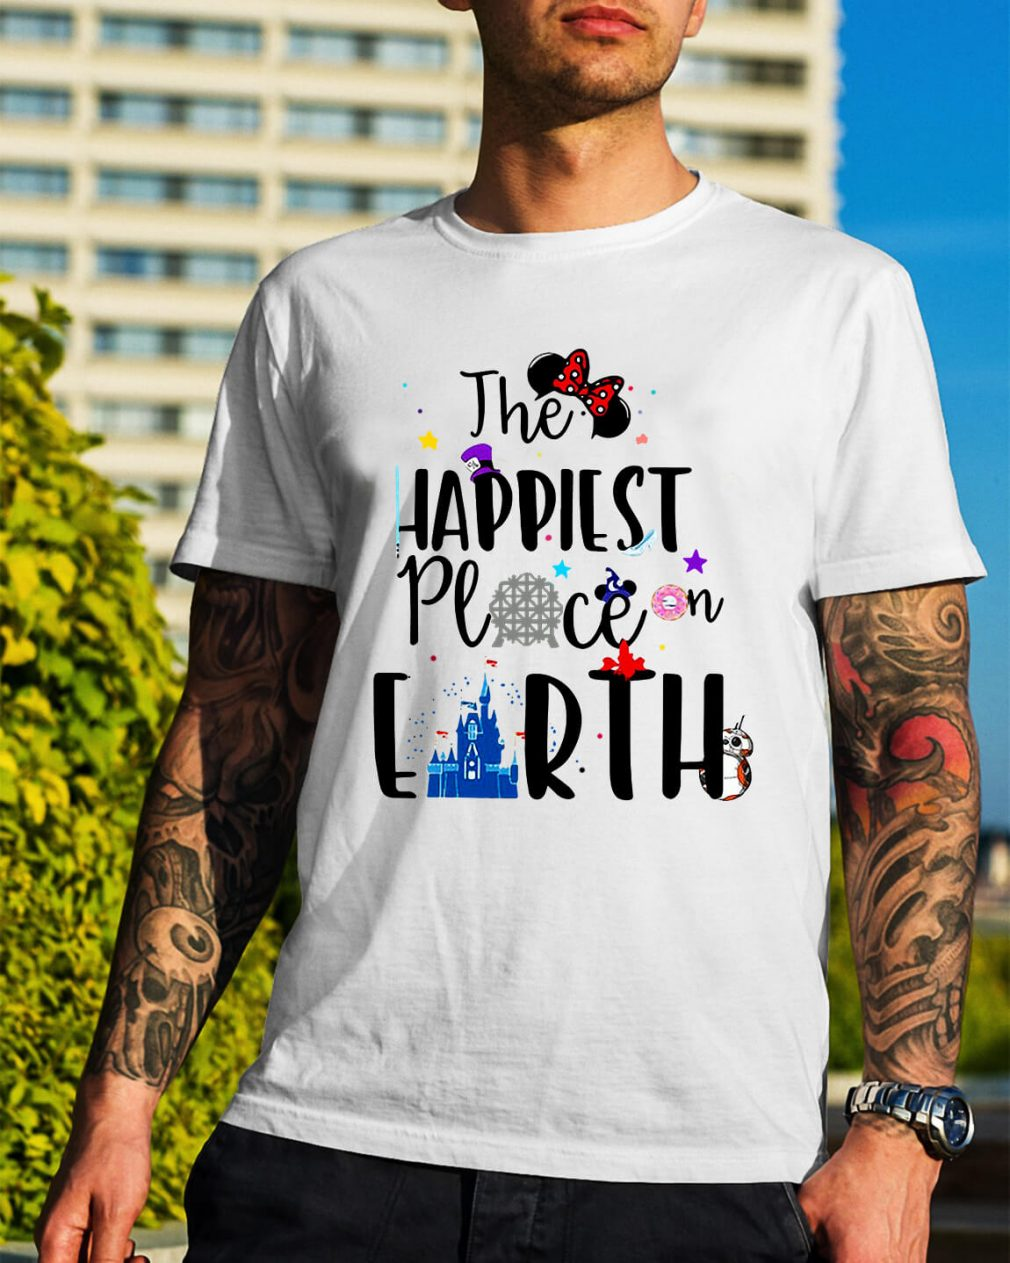 Disneyland Disney the happiest place on earth shirt